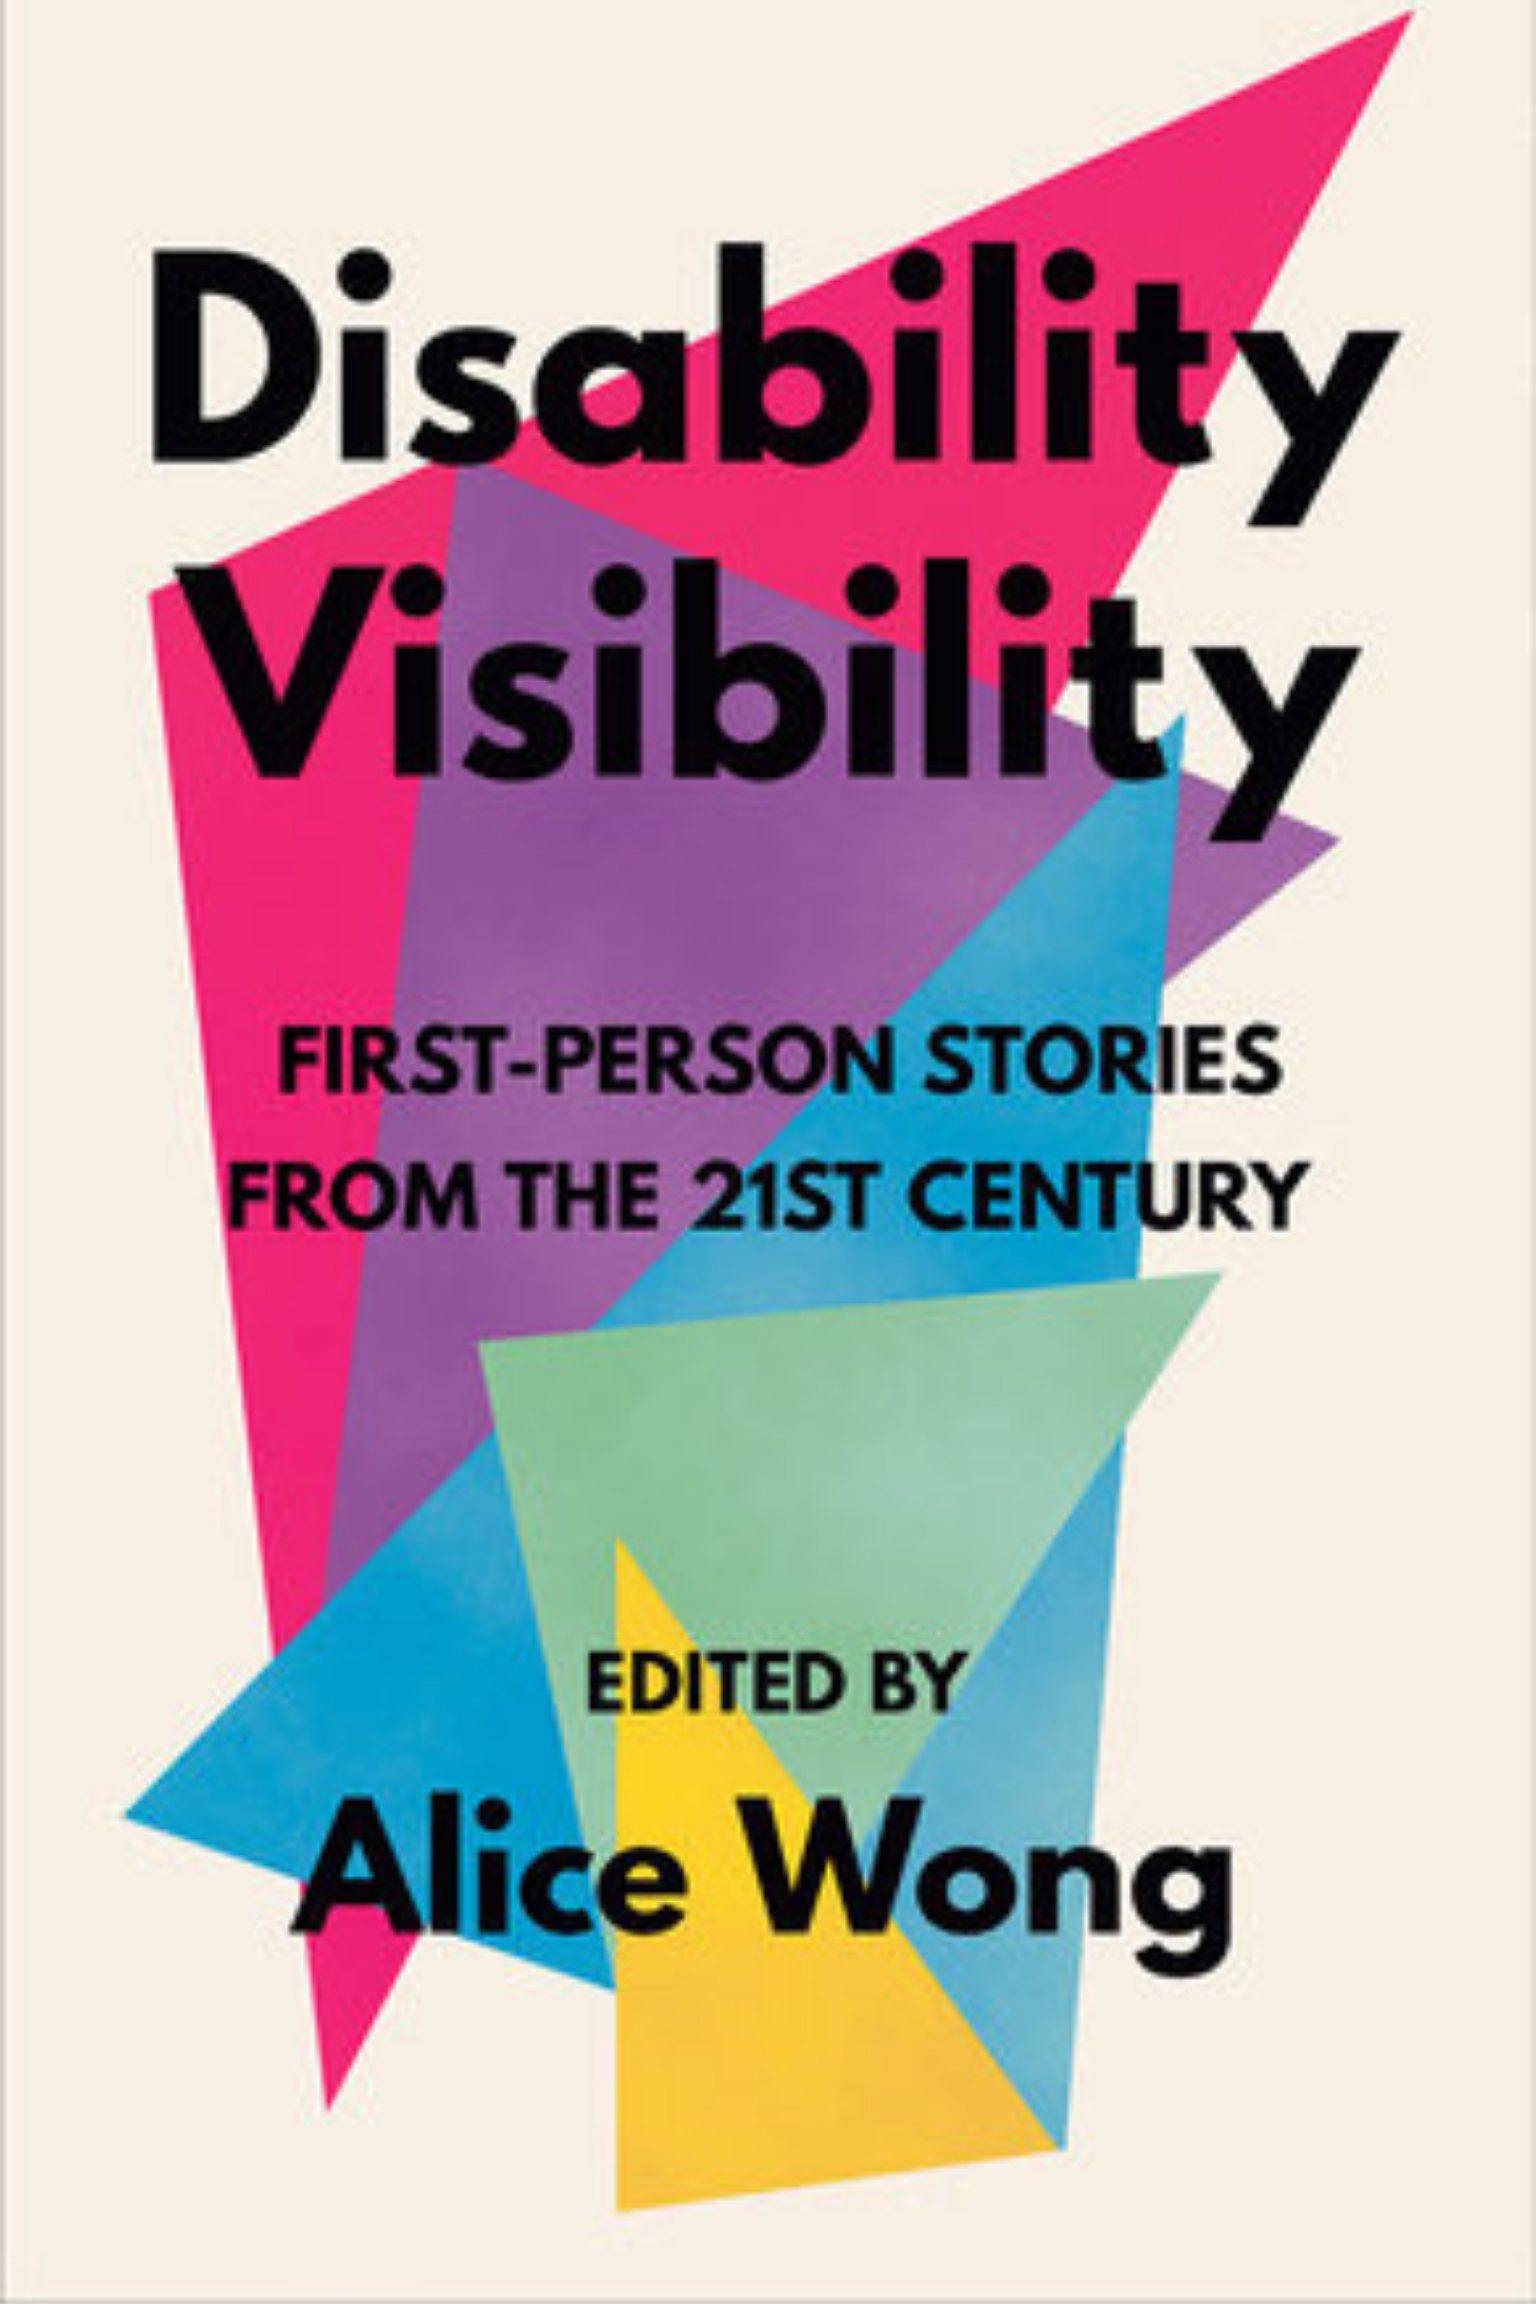 The book cover of Disability Visibility